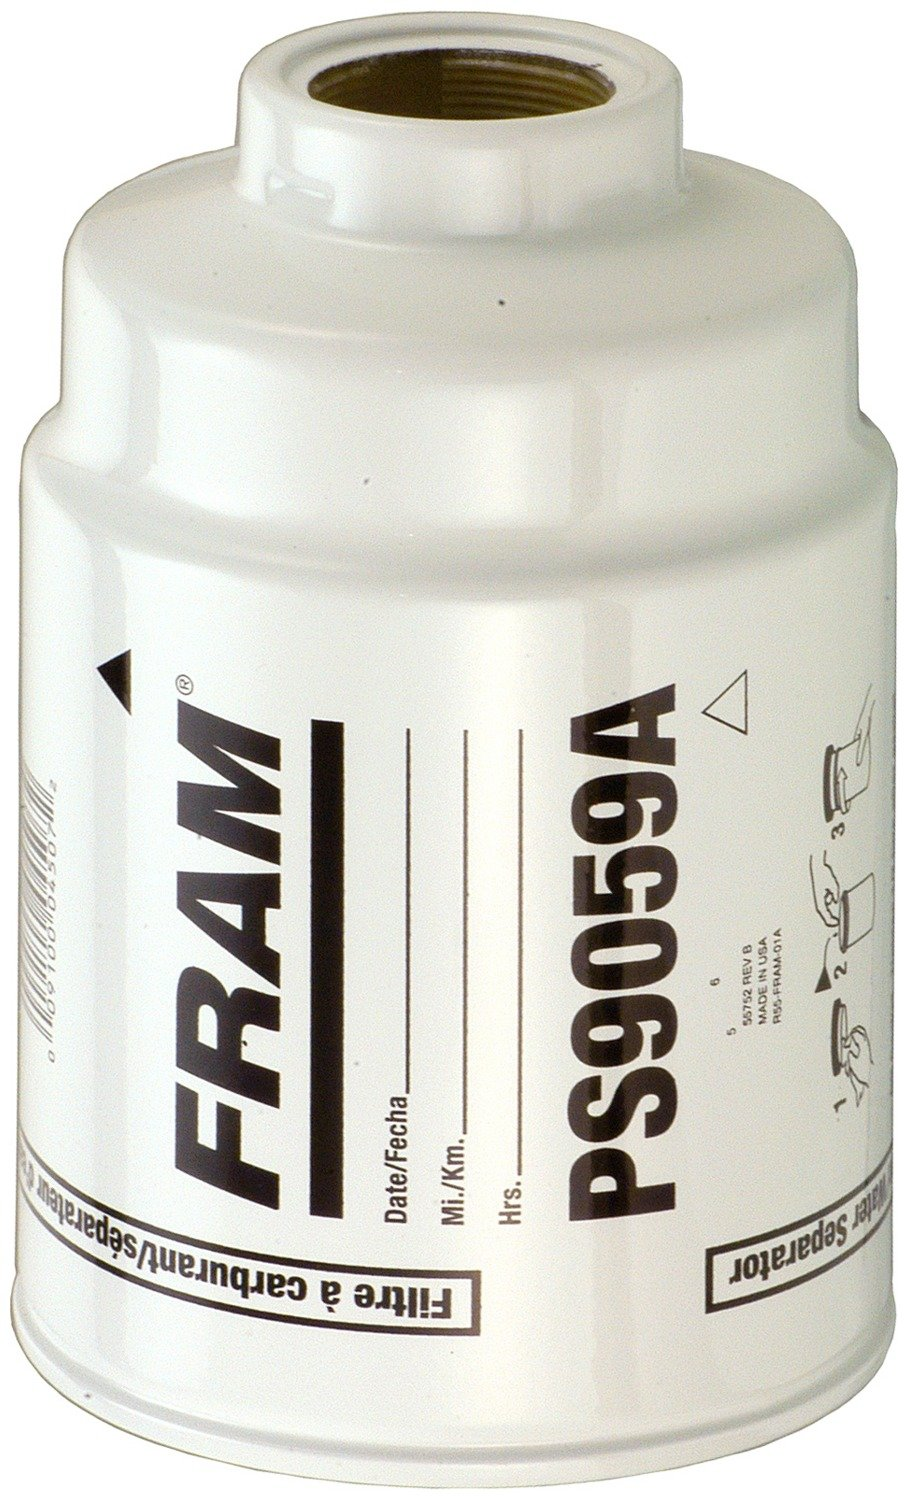 Fram PS9059A Heavy Duty Fuel Water Separator Filter nobrandname FRA:PS9059A